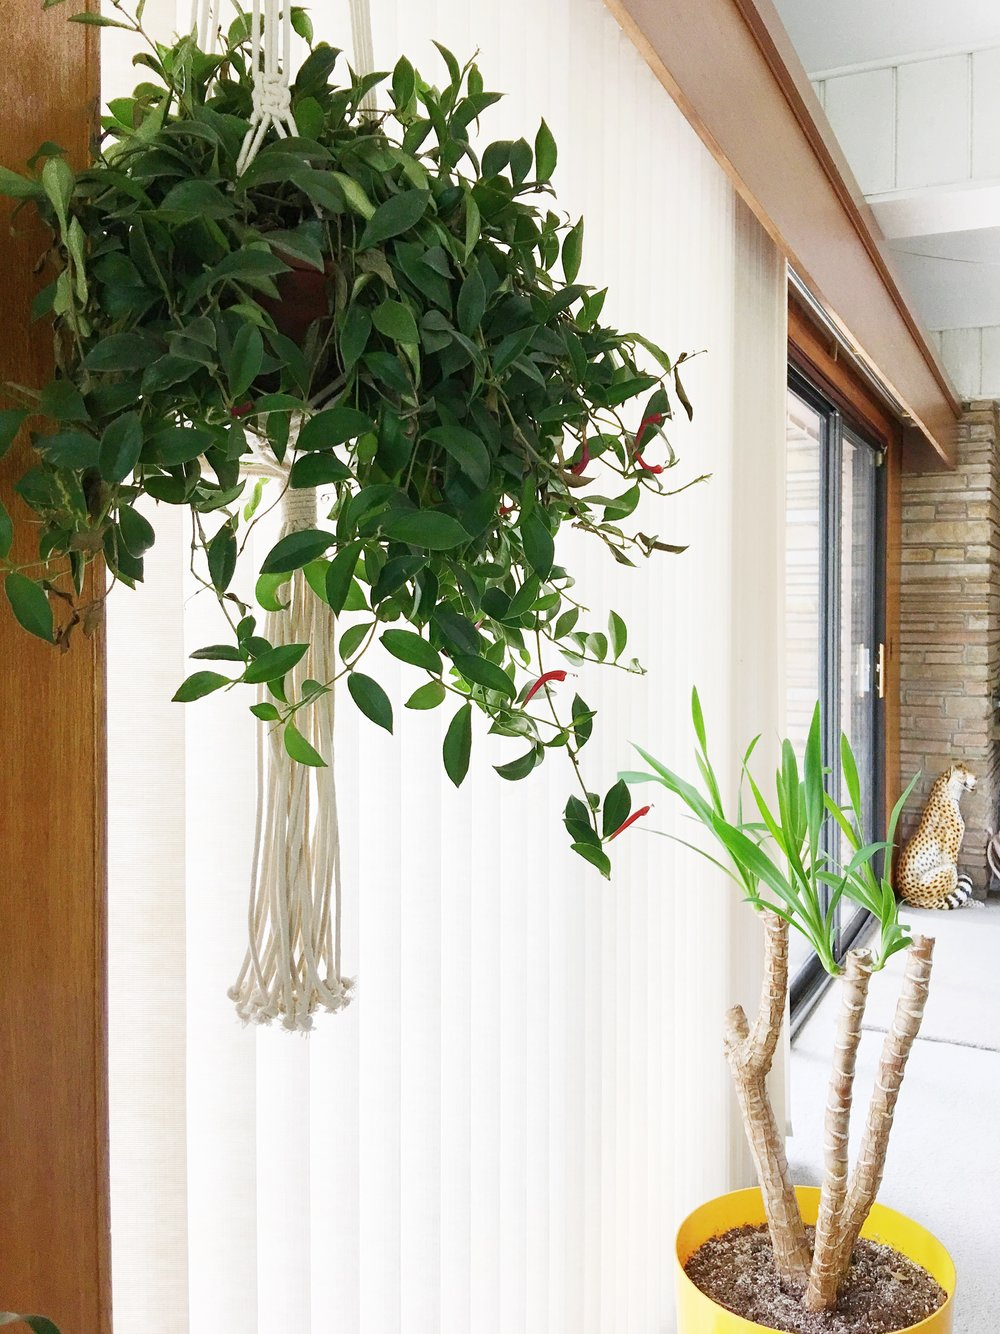 This pretty hanging plant seems to thrive in the south facing window.